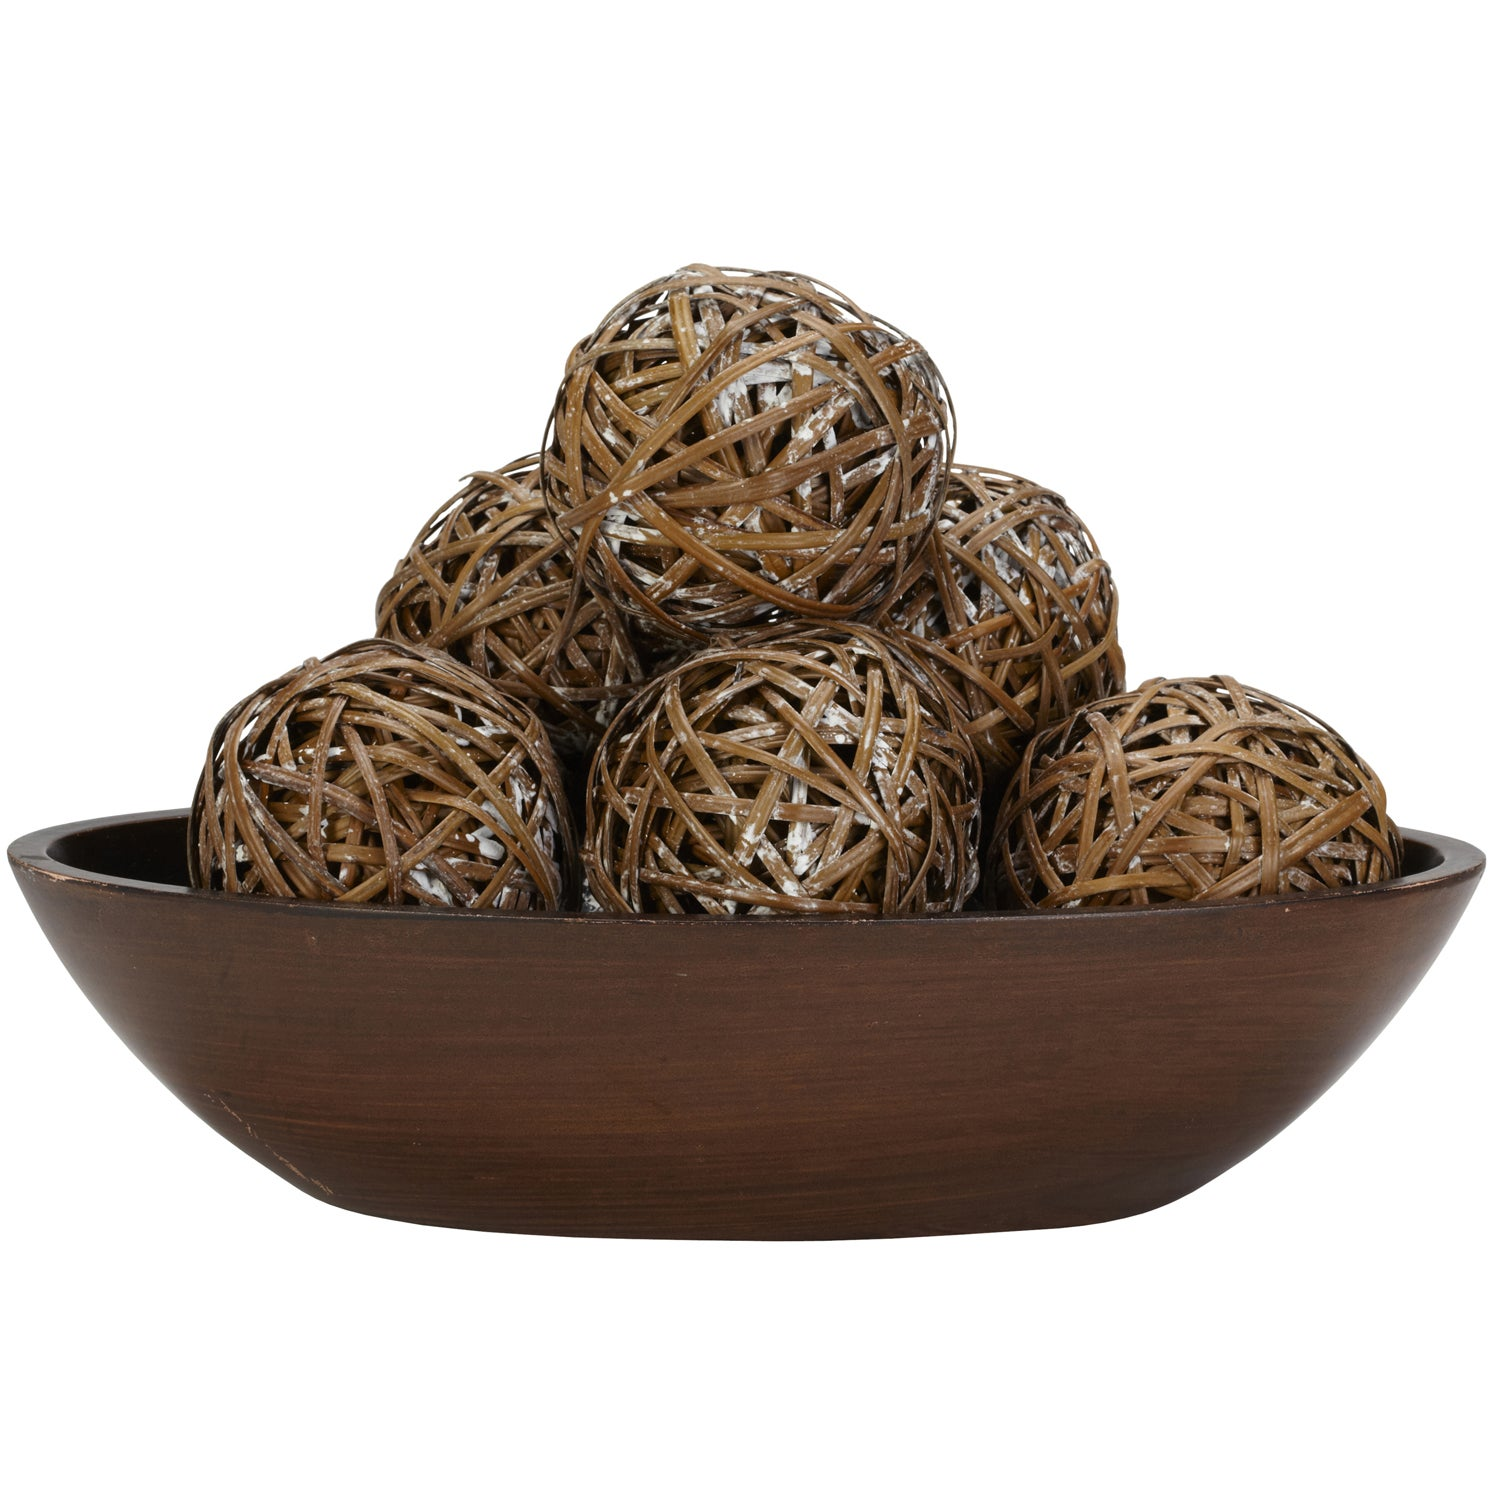 Decorative Balls (Set of 6) - Free Shipping On Orders Over ...